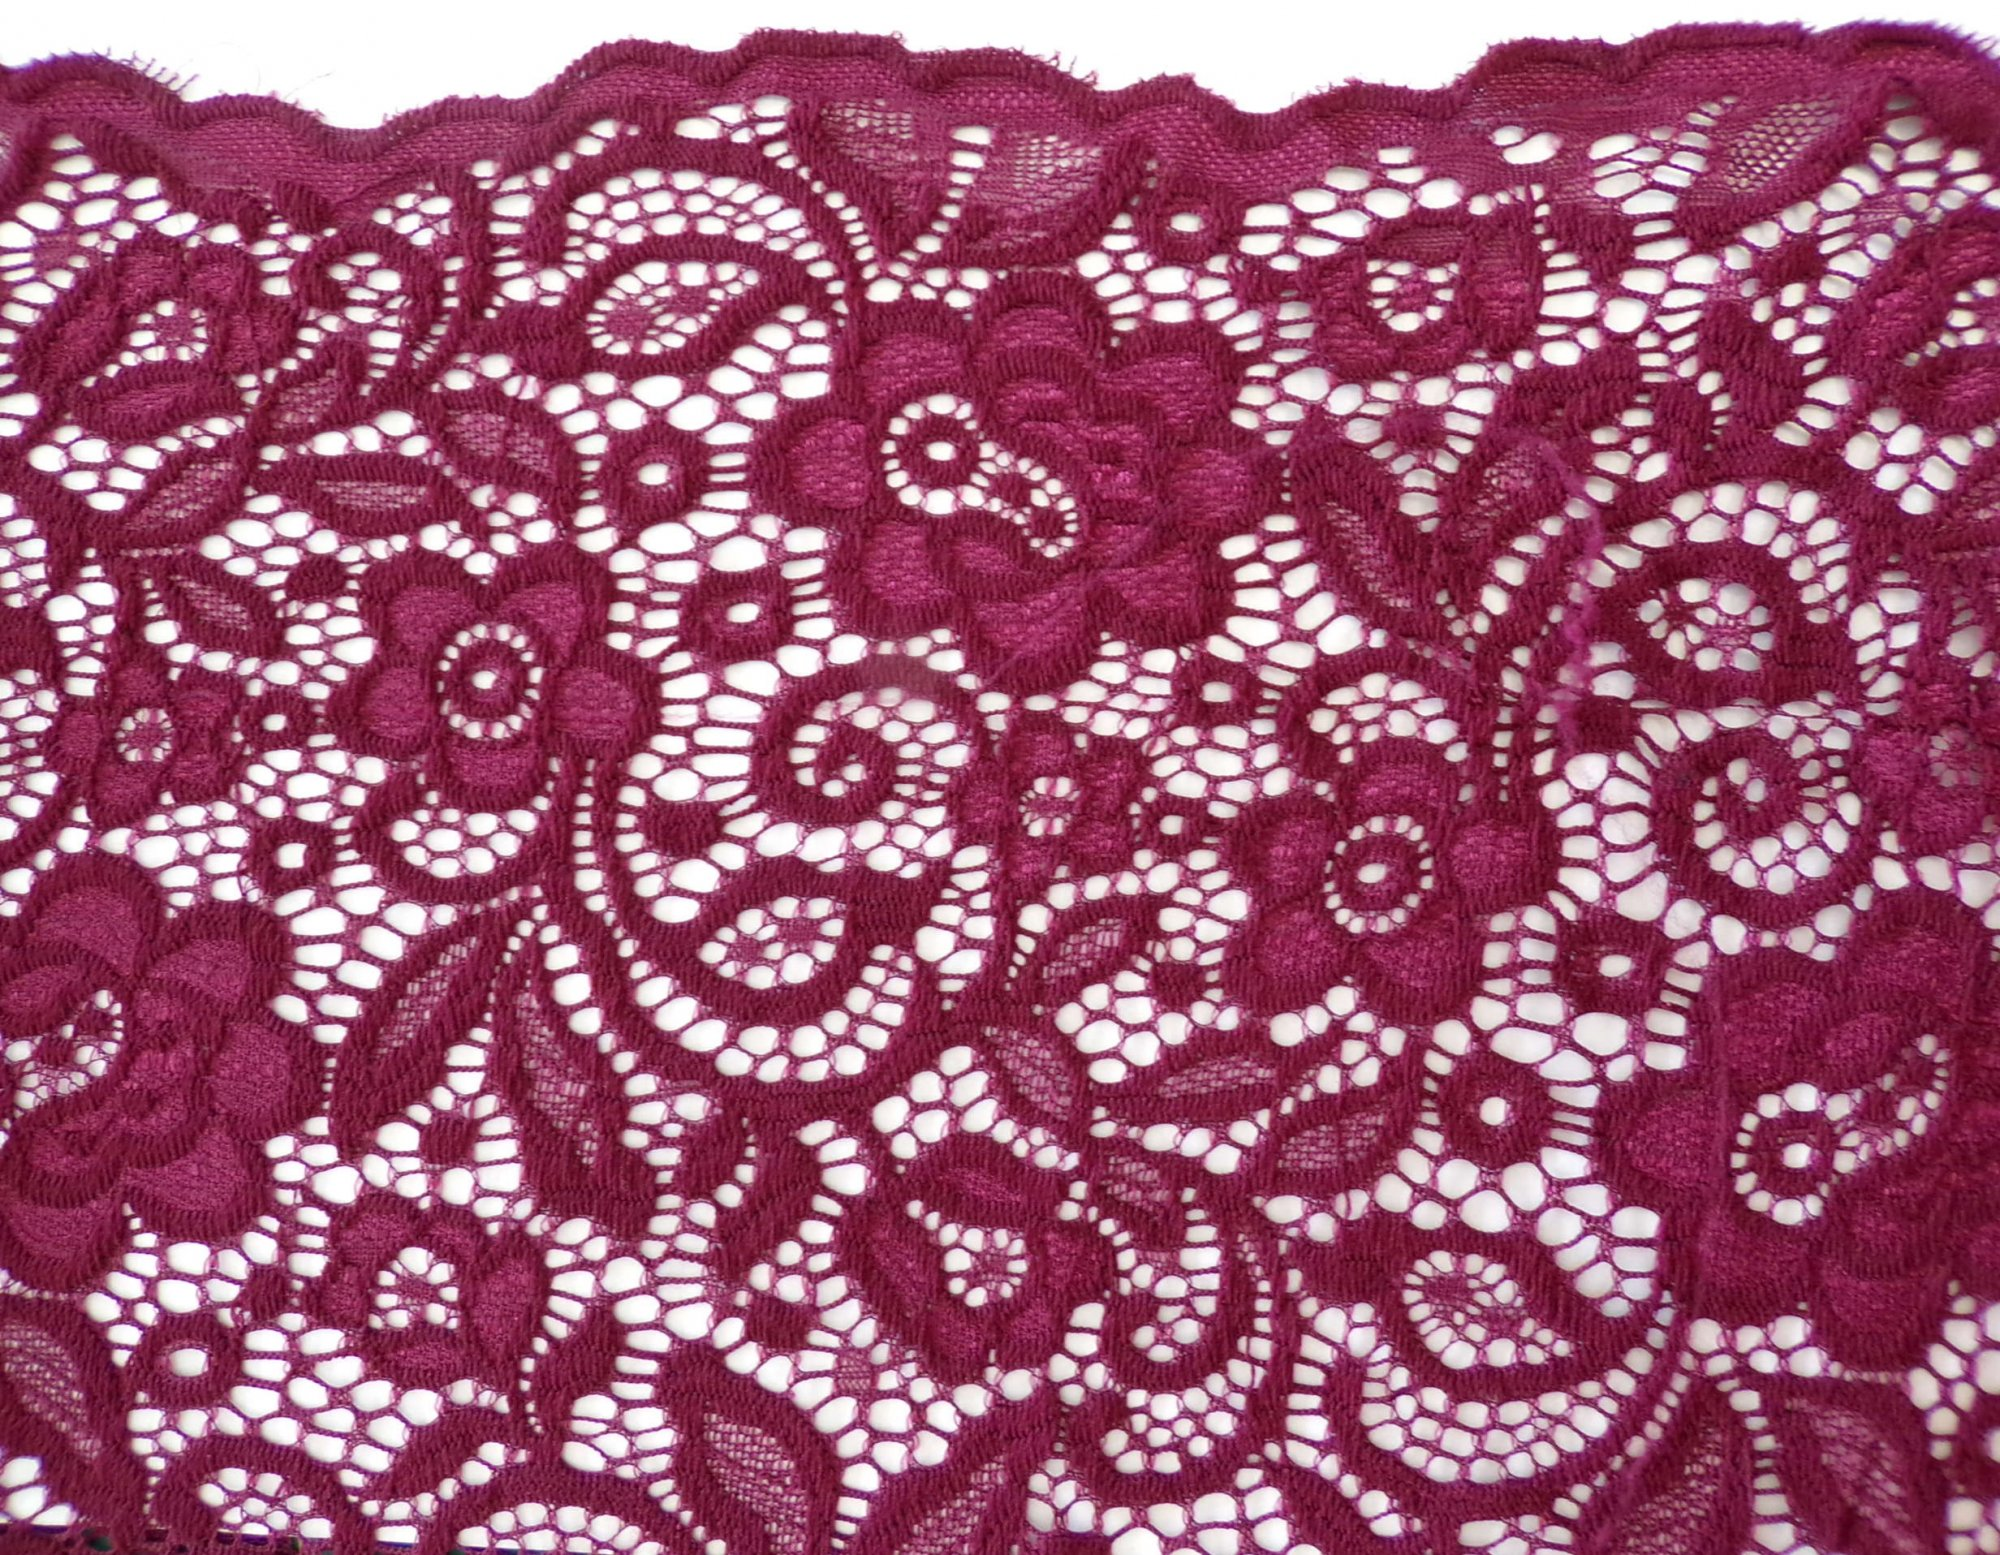 Scalloped Stretch Lace - Burgundy